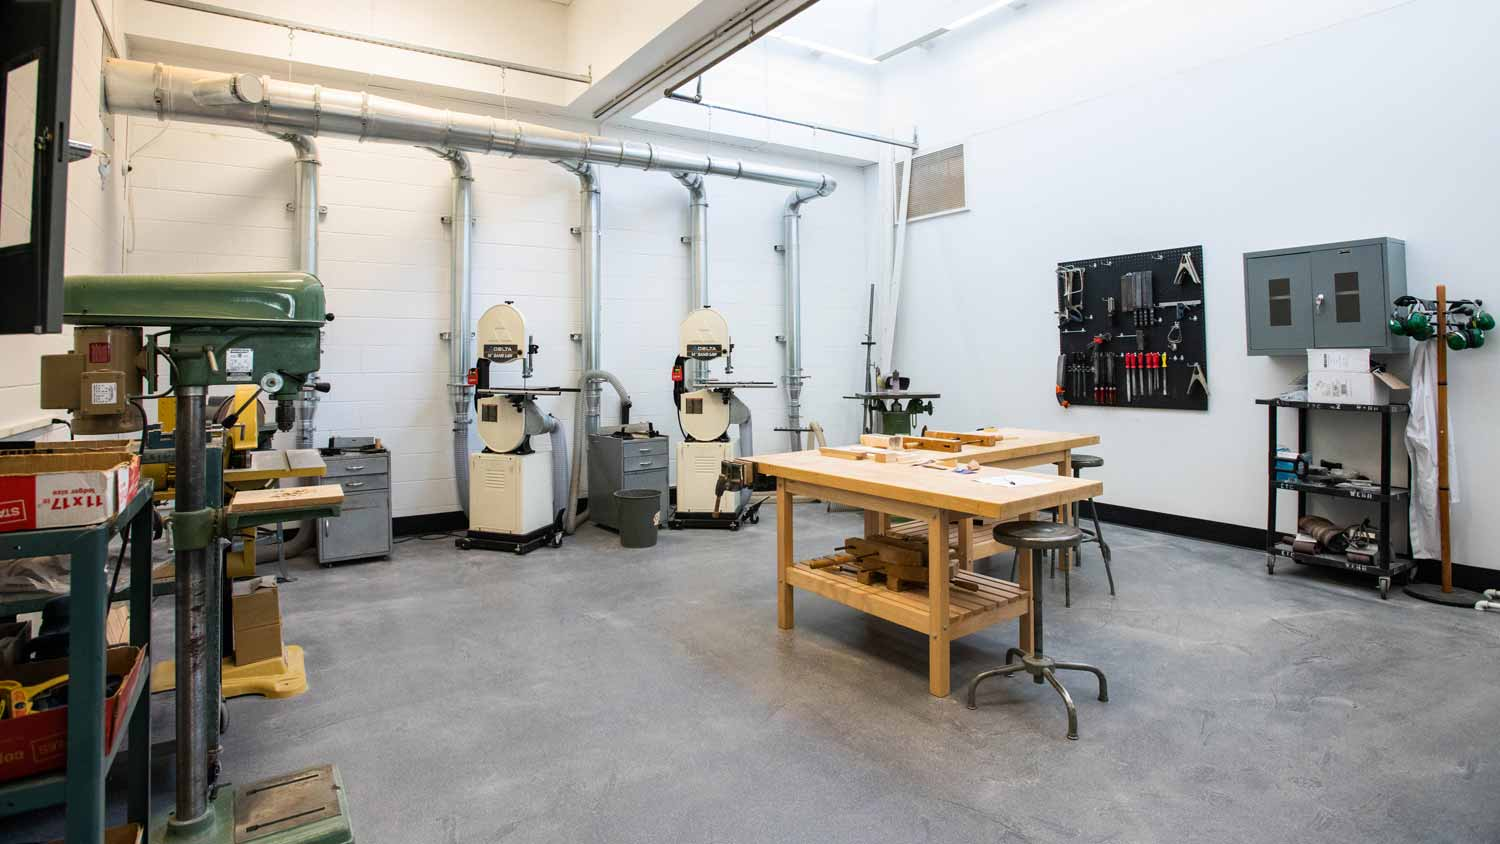 Fabrication room with bandsaws, drill presses, and other equipment